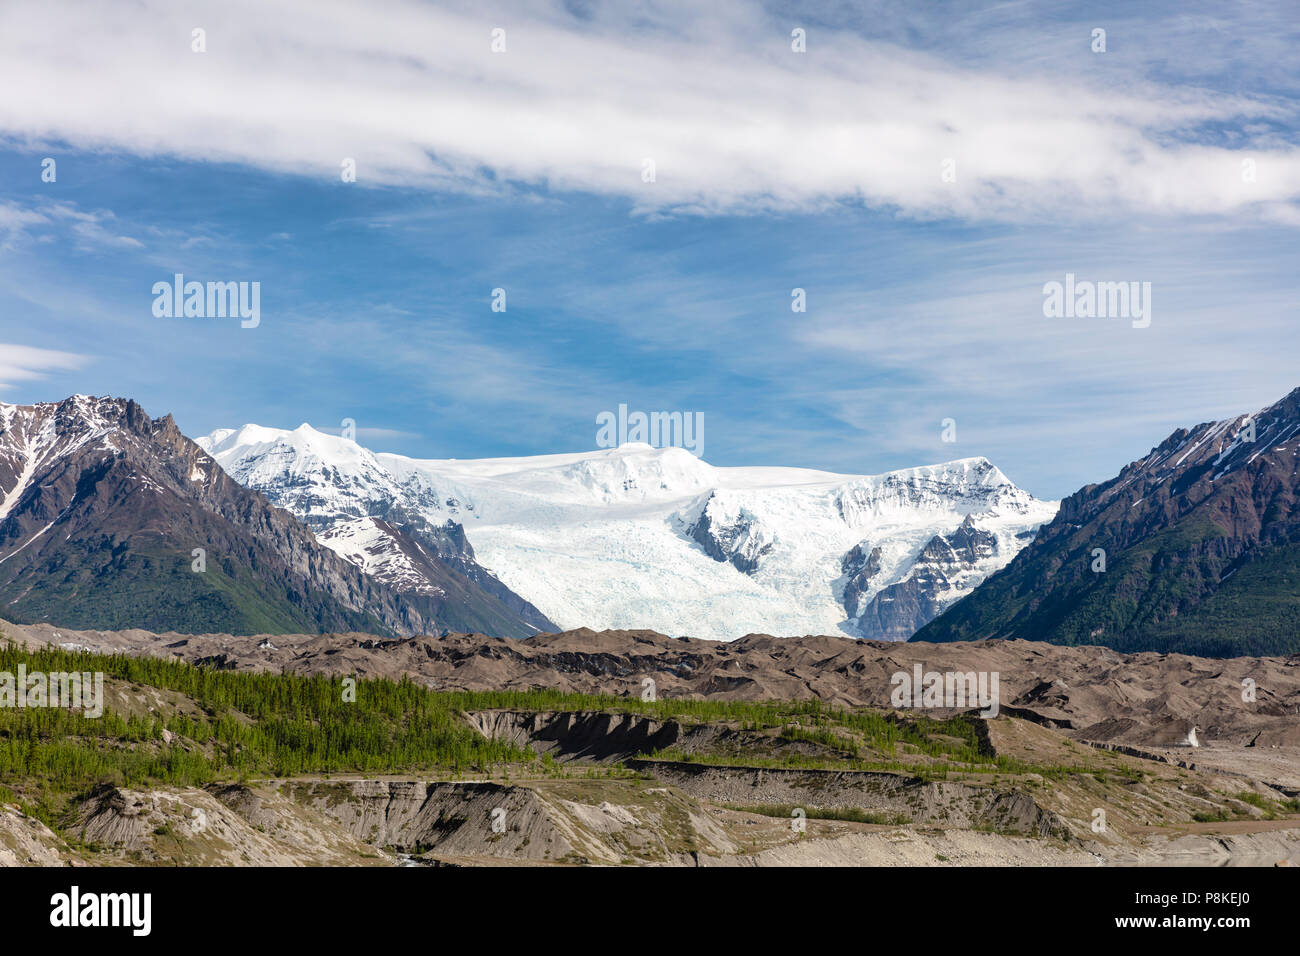 Stairway Icefall on Root Glacier in Wrangell-St. Elias in Southcentral Alaska. - Stock Image